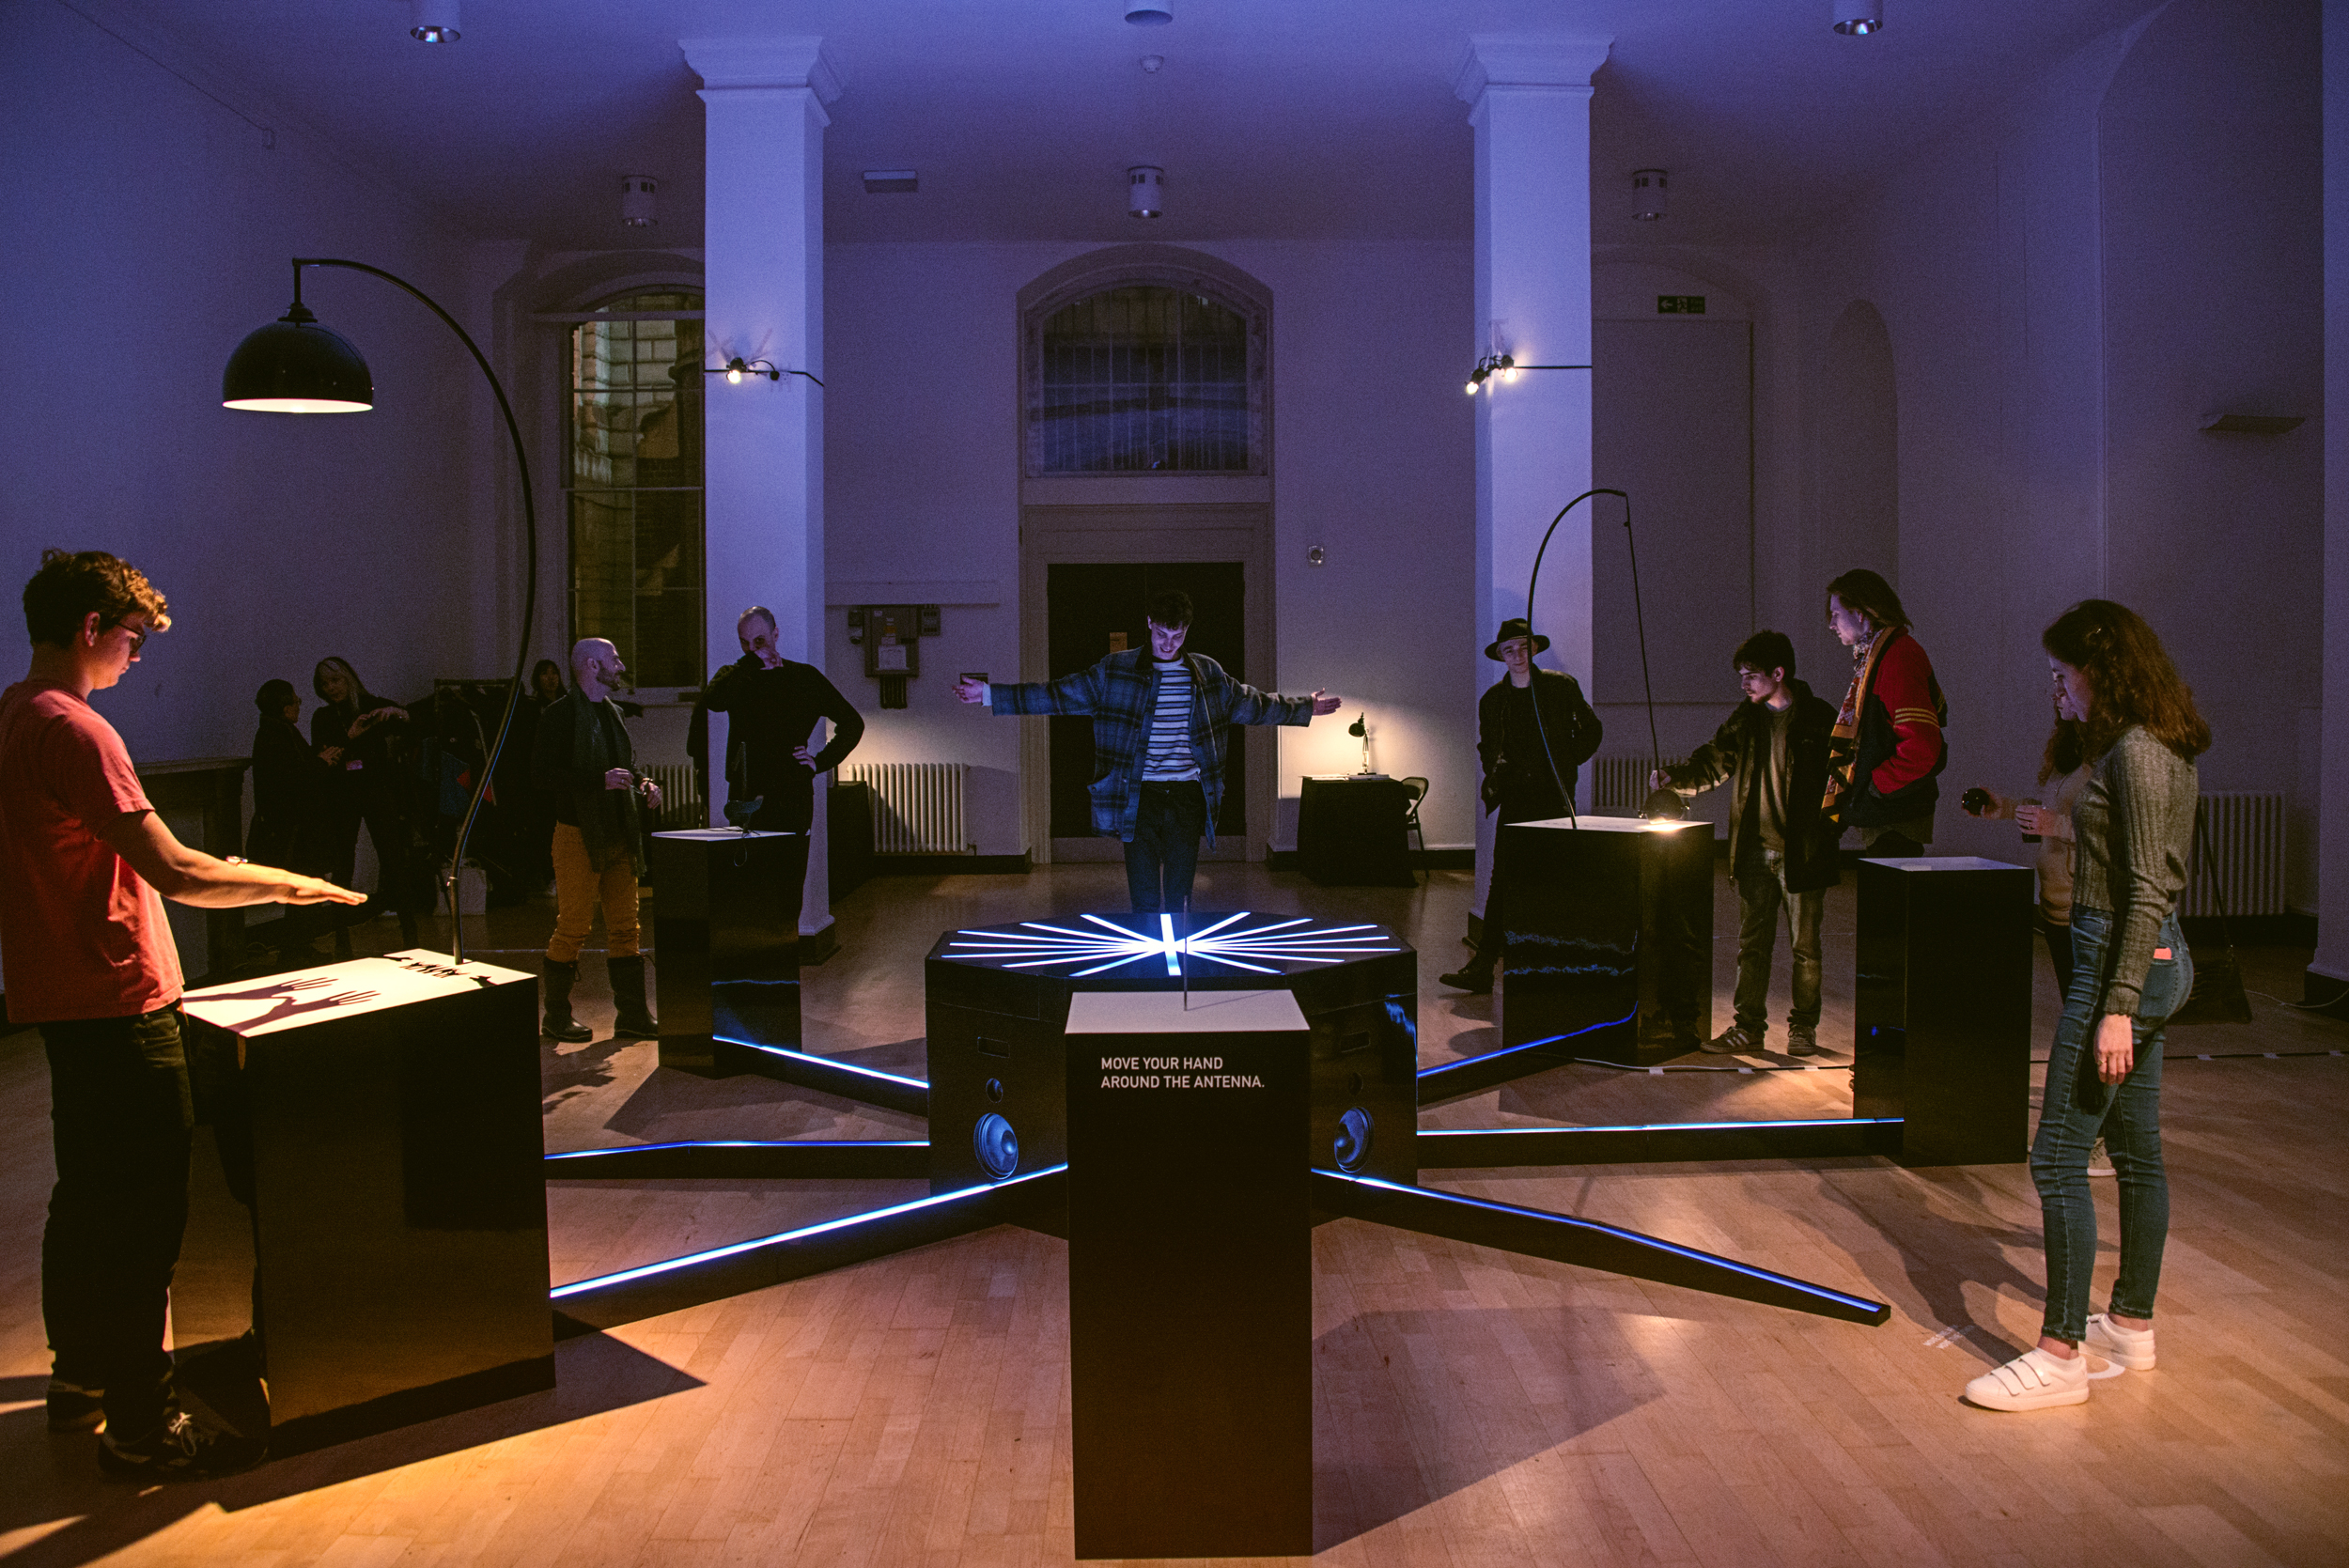 Participants collaborate to create music through bespoke instruments that use light, movement and touch, at the preview of Cave of Sounds at Music Hackspace, Somerset House Studios, Jan 2018. Photo: Suzi Corker